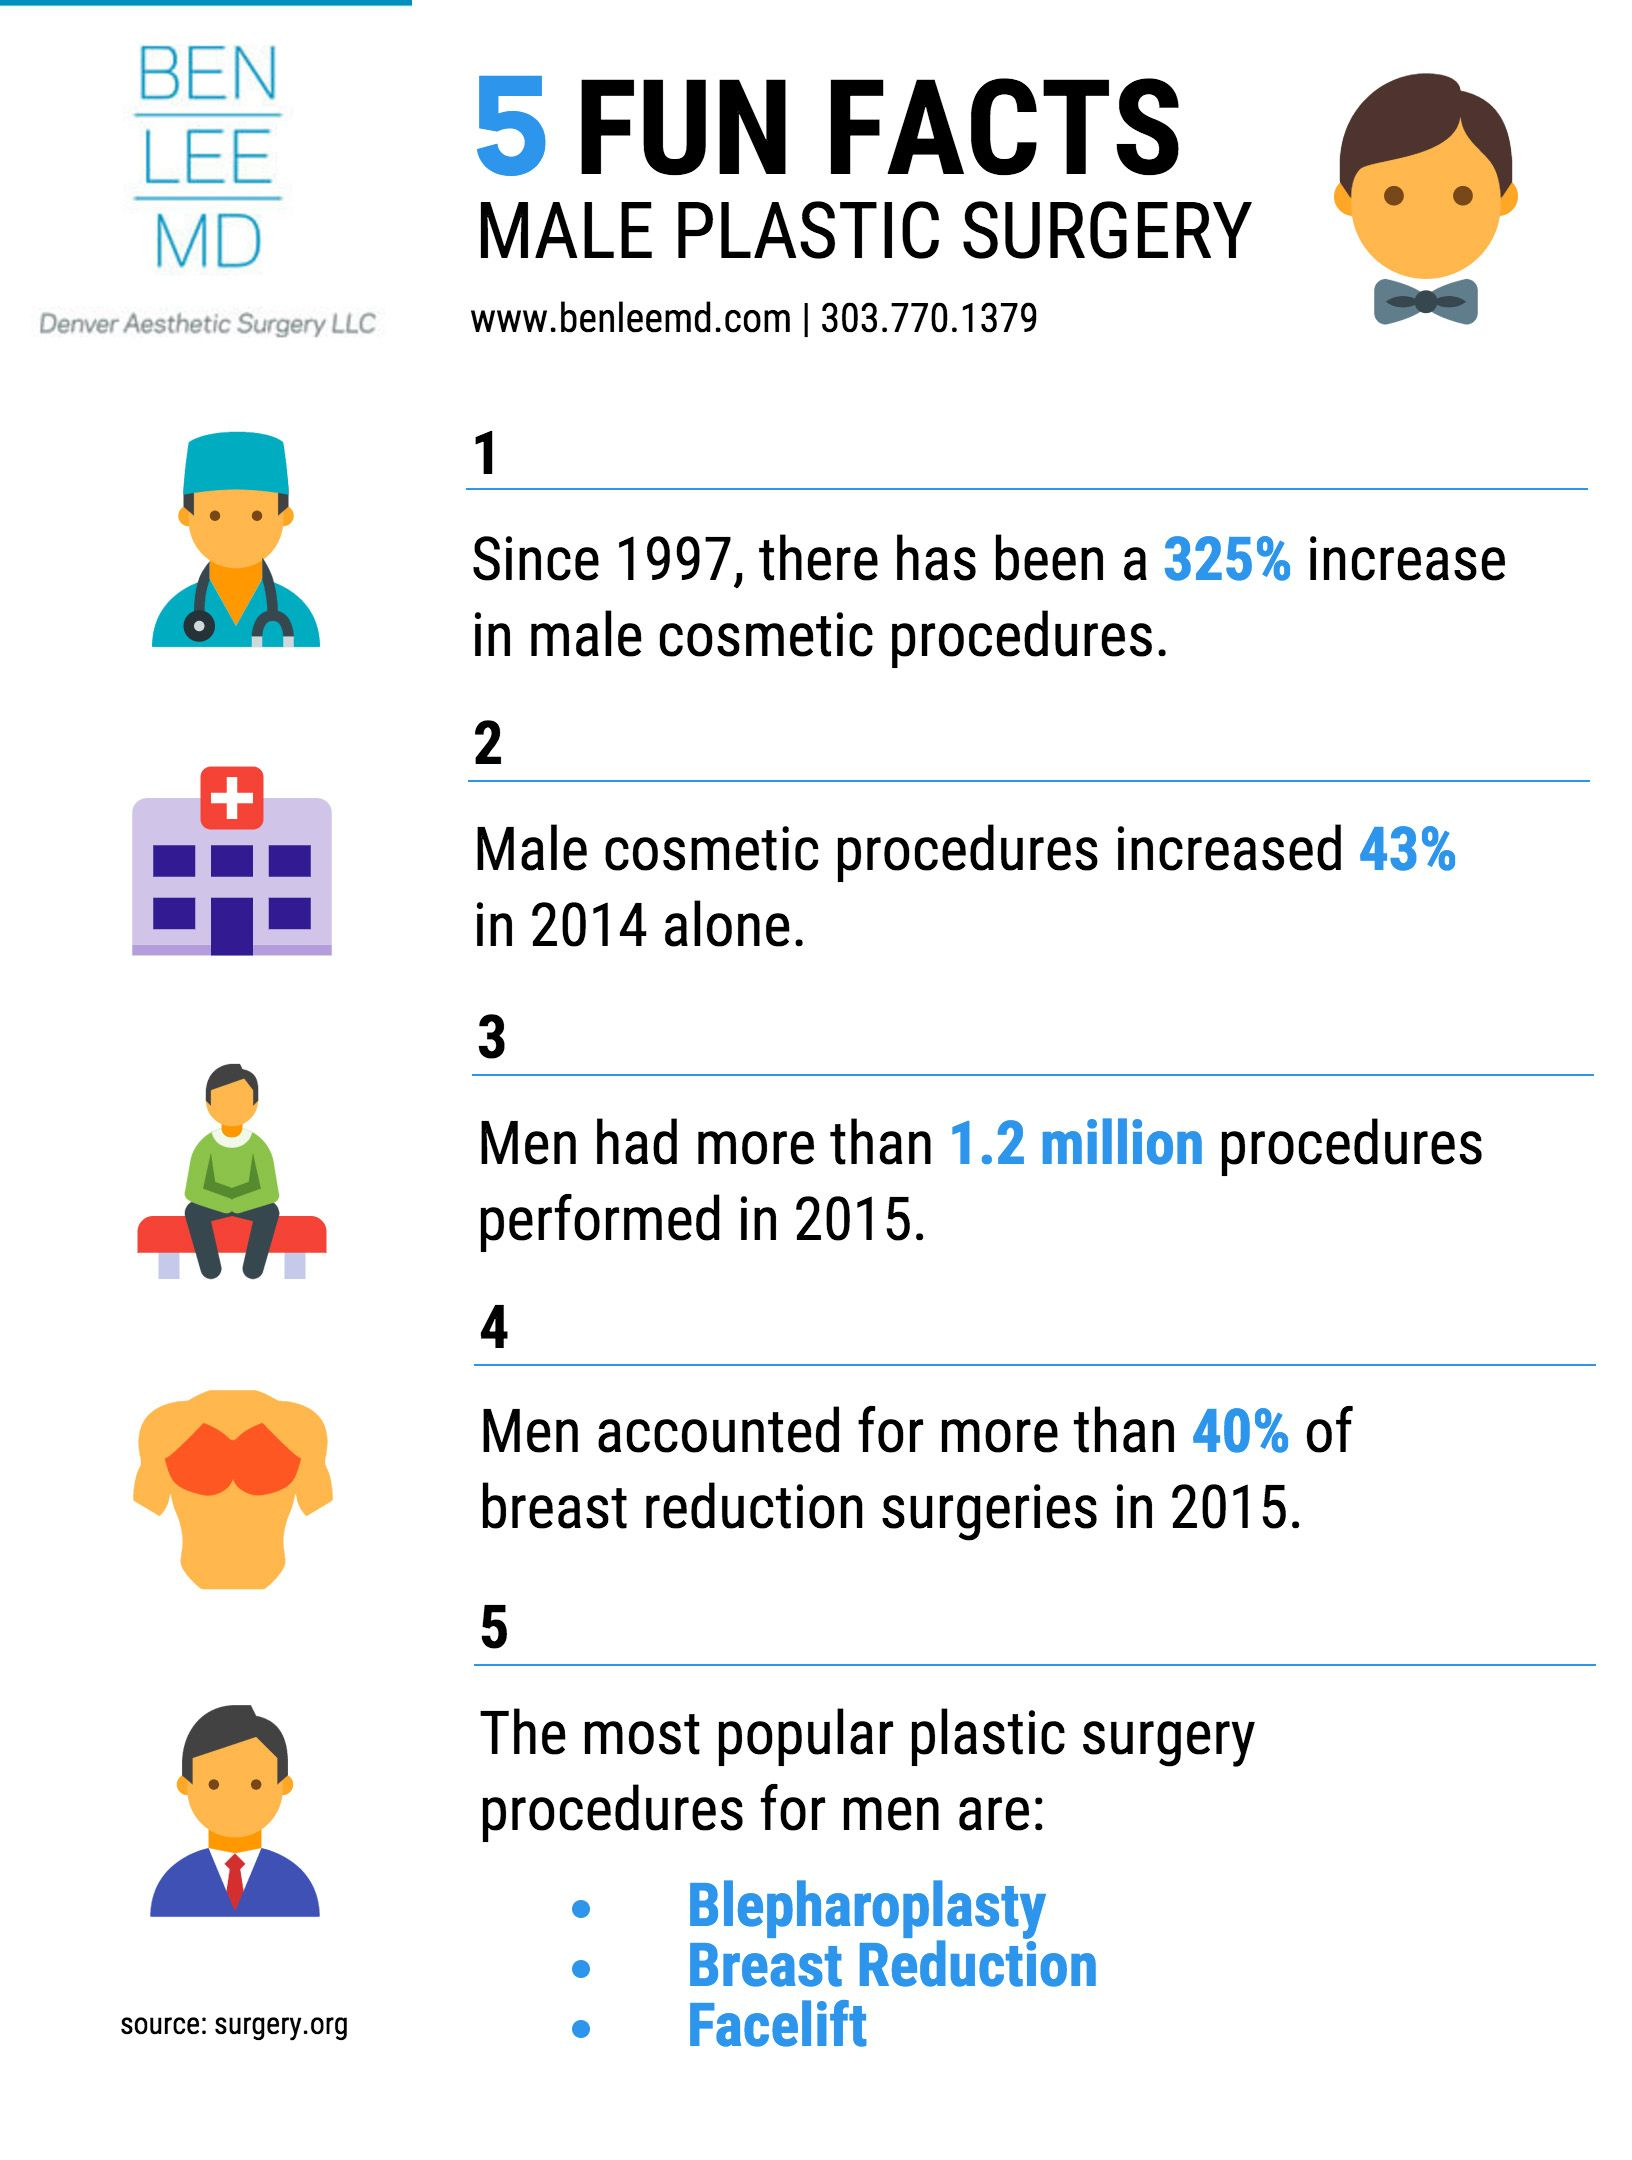 5 Fun Facts About Male Plastic Surgery